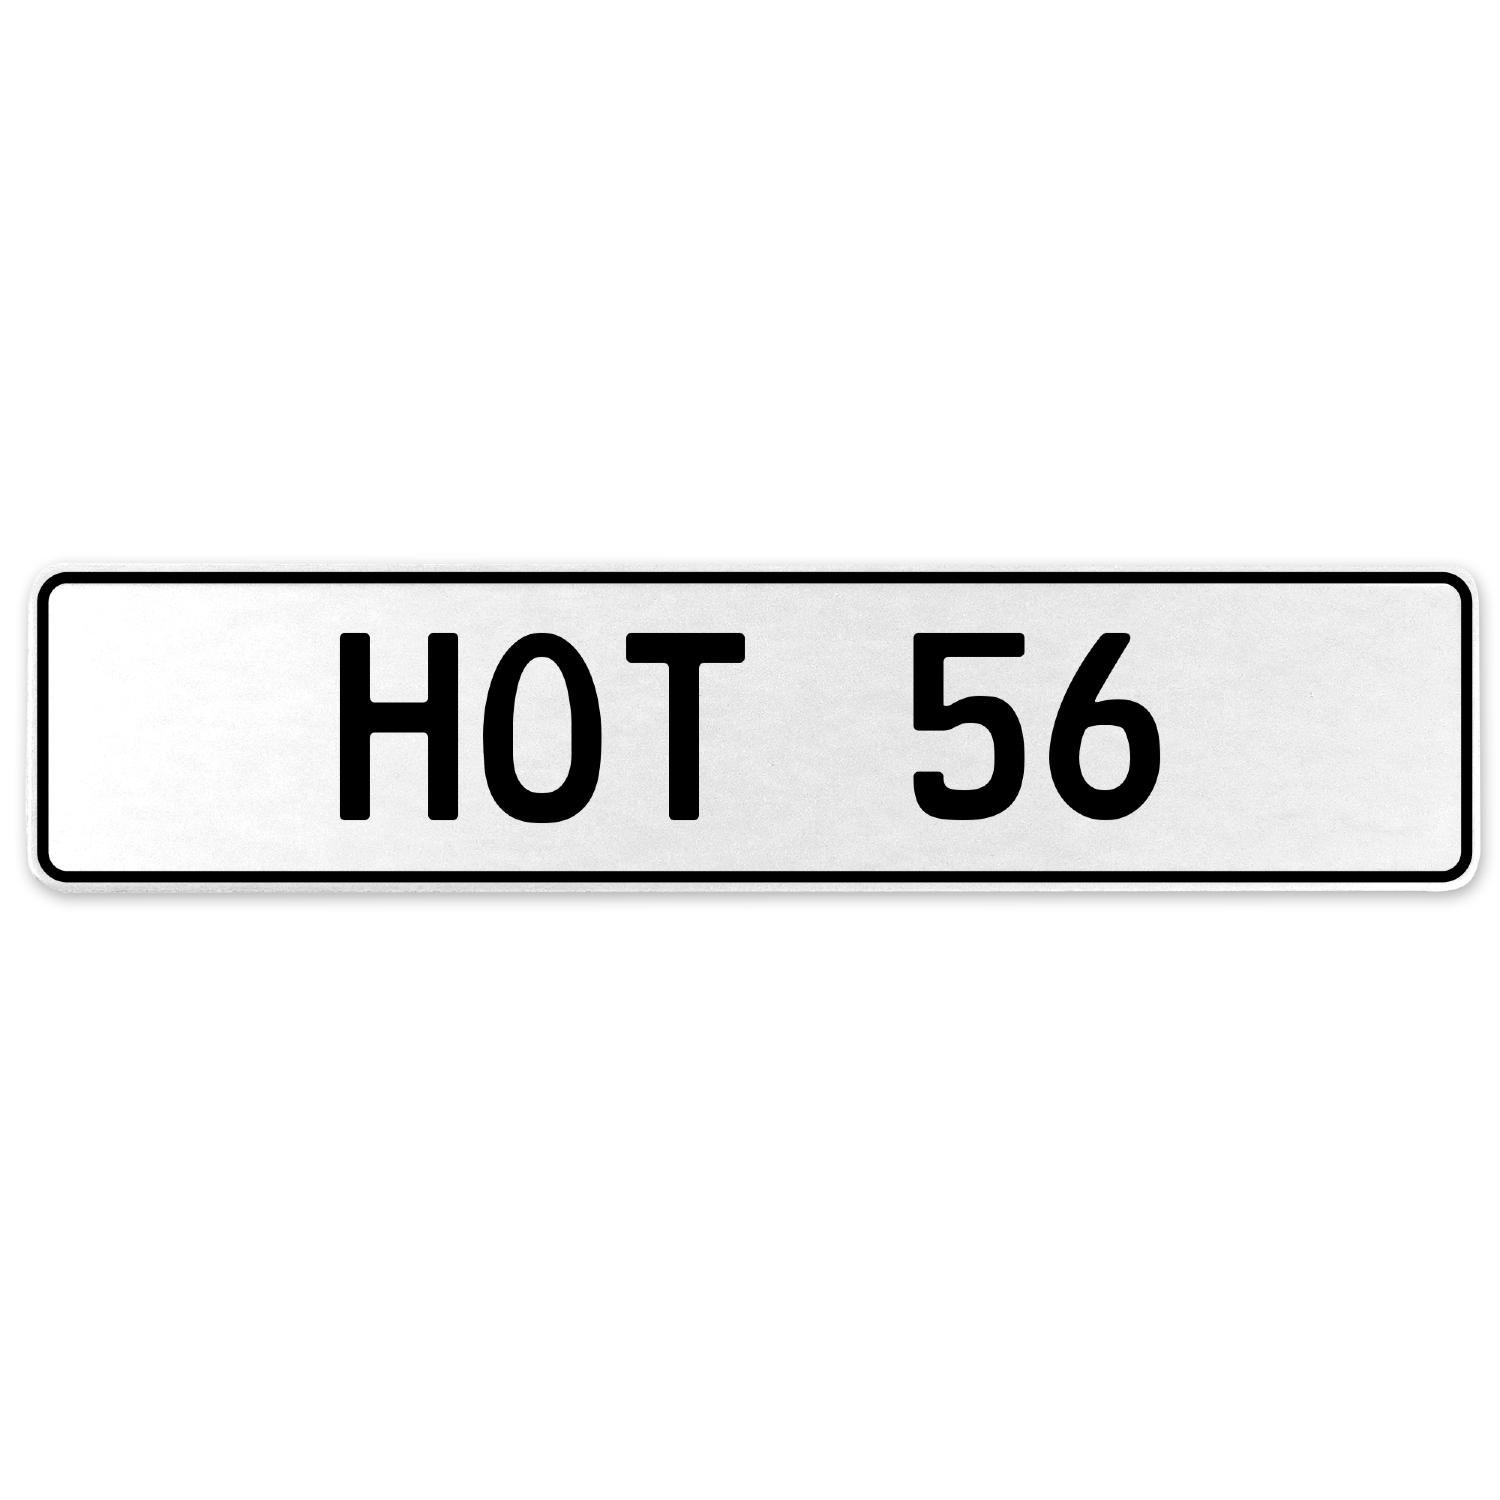 Vintage Parts 553663 HOT 56 White Stamped Aluminum European License Plate